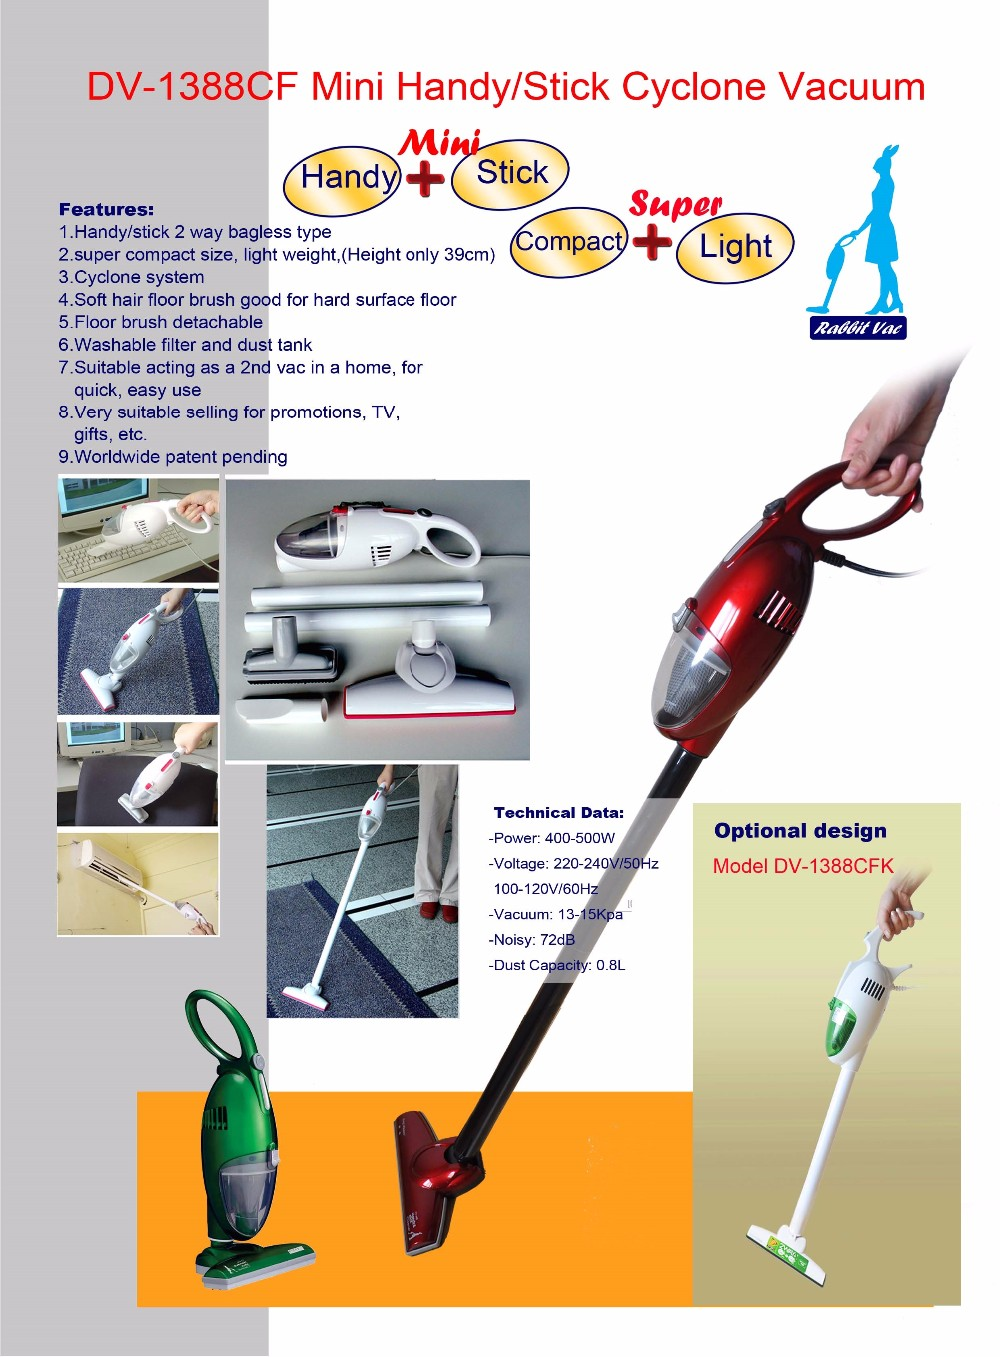 500W High Performance Handy Vacuum Cleaner Hand Stick 2 in 1 Vacuum Cleaner